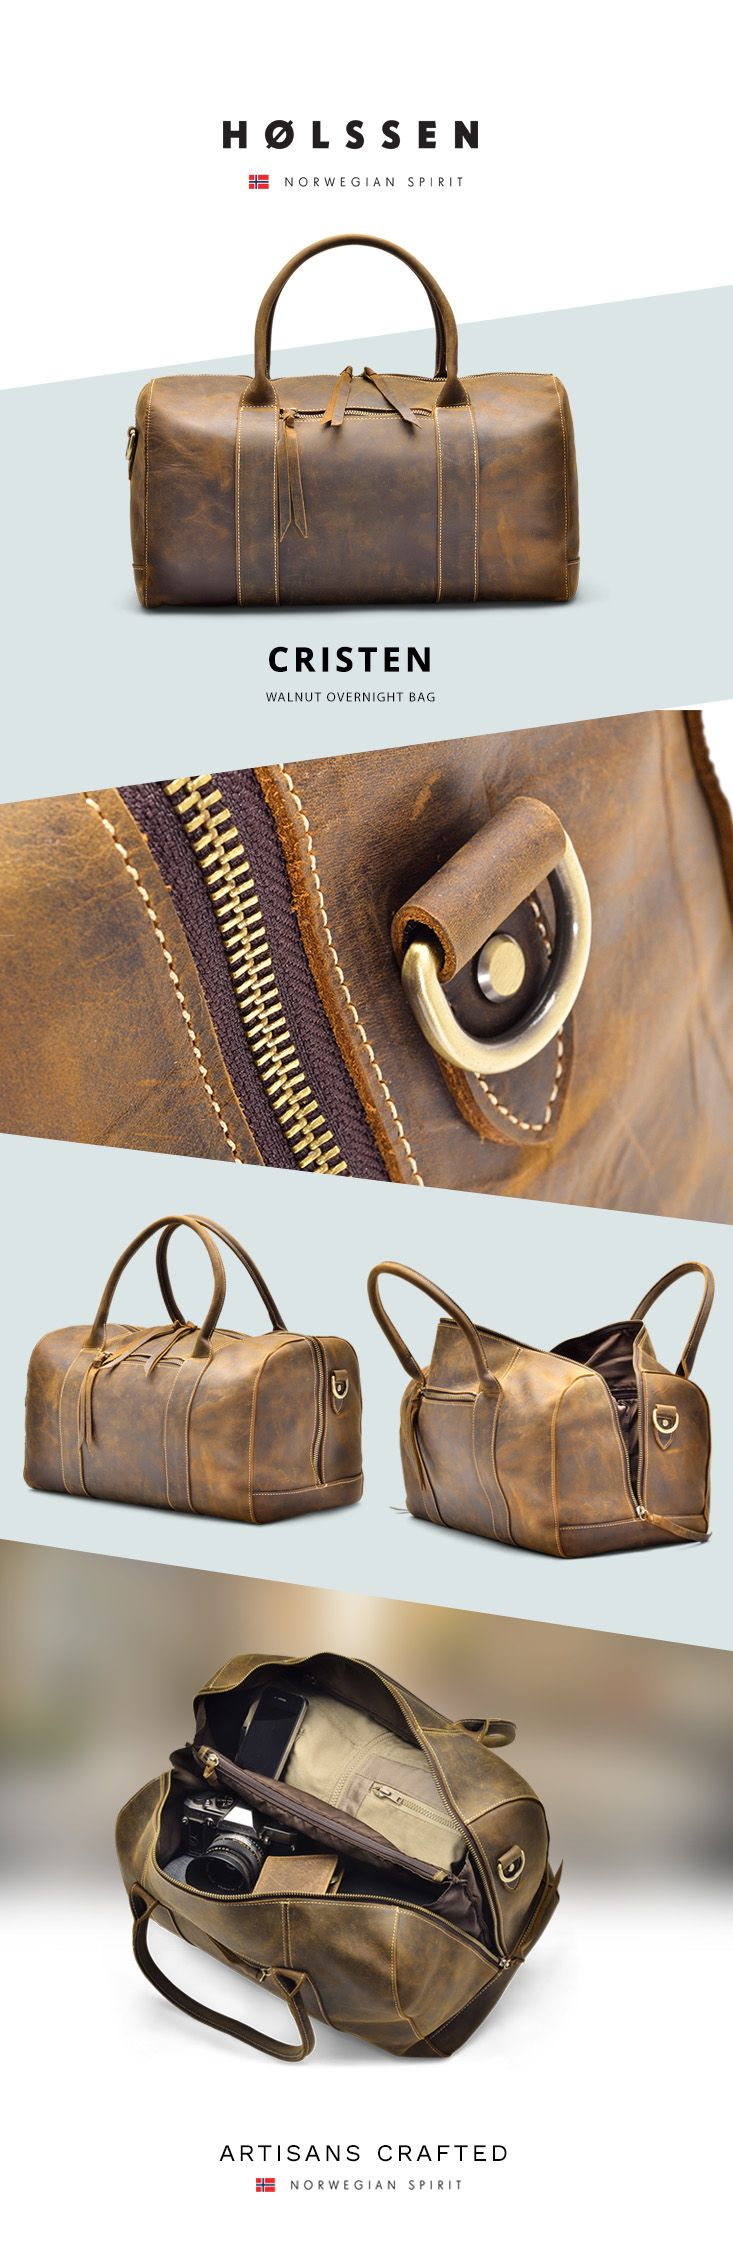 Our Holssen Cristen Overnight bag is a handsome and durable bag handcrafted with full grain leather. With two compartments and a middle zip pocket, you get plenty of space to keep everything organized.